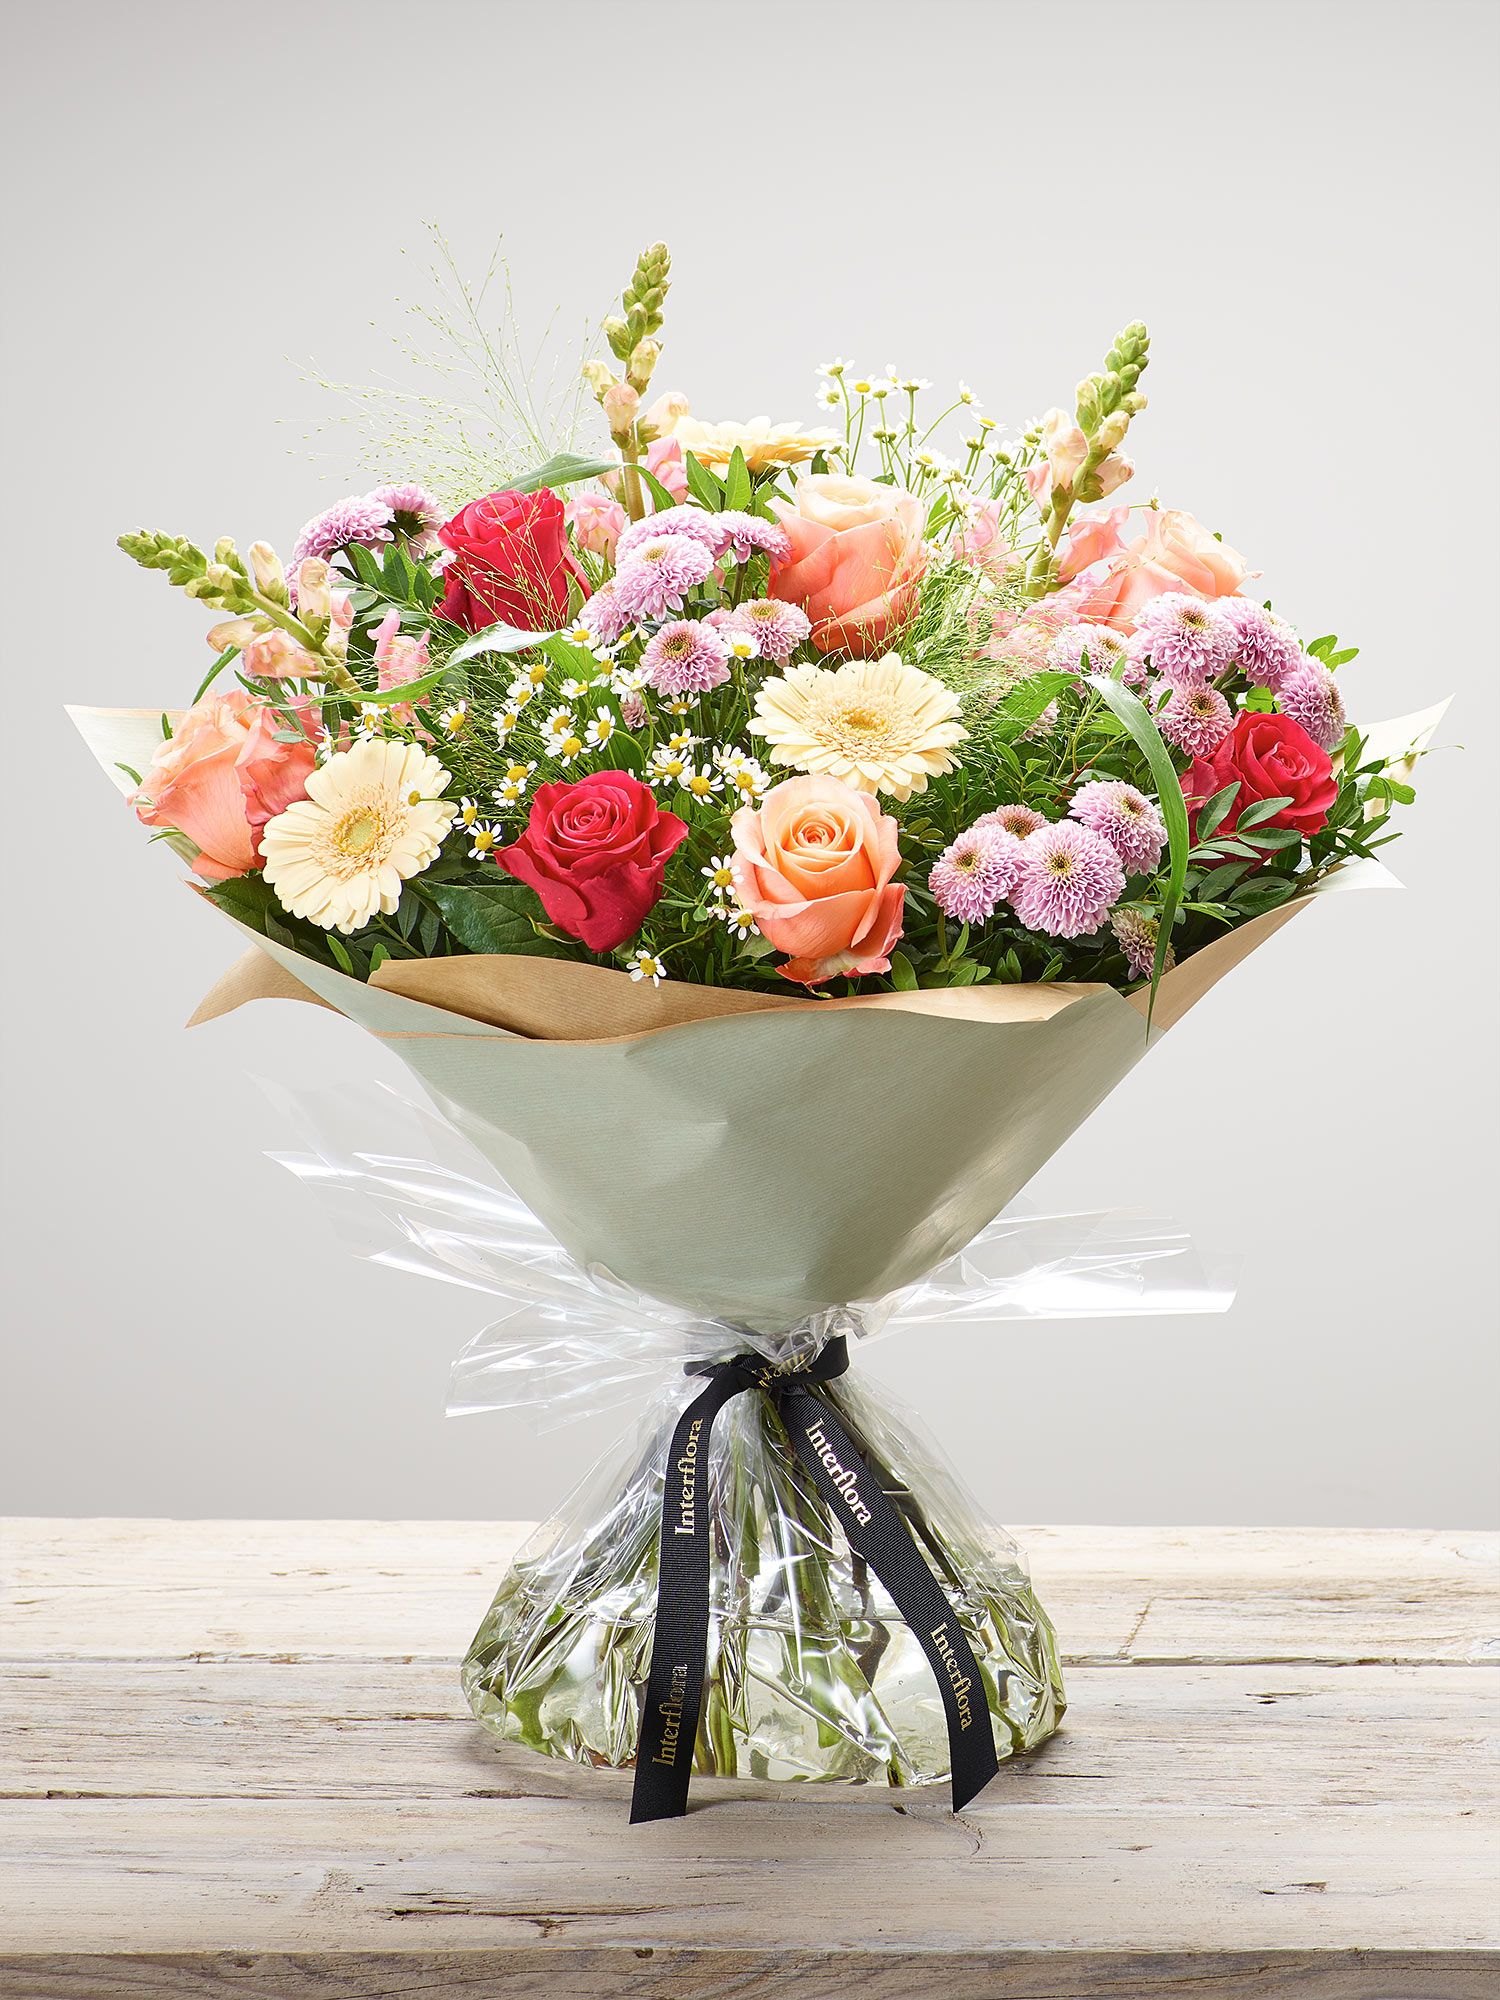 Featuring salmon large headed roses, cerise large headed